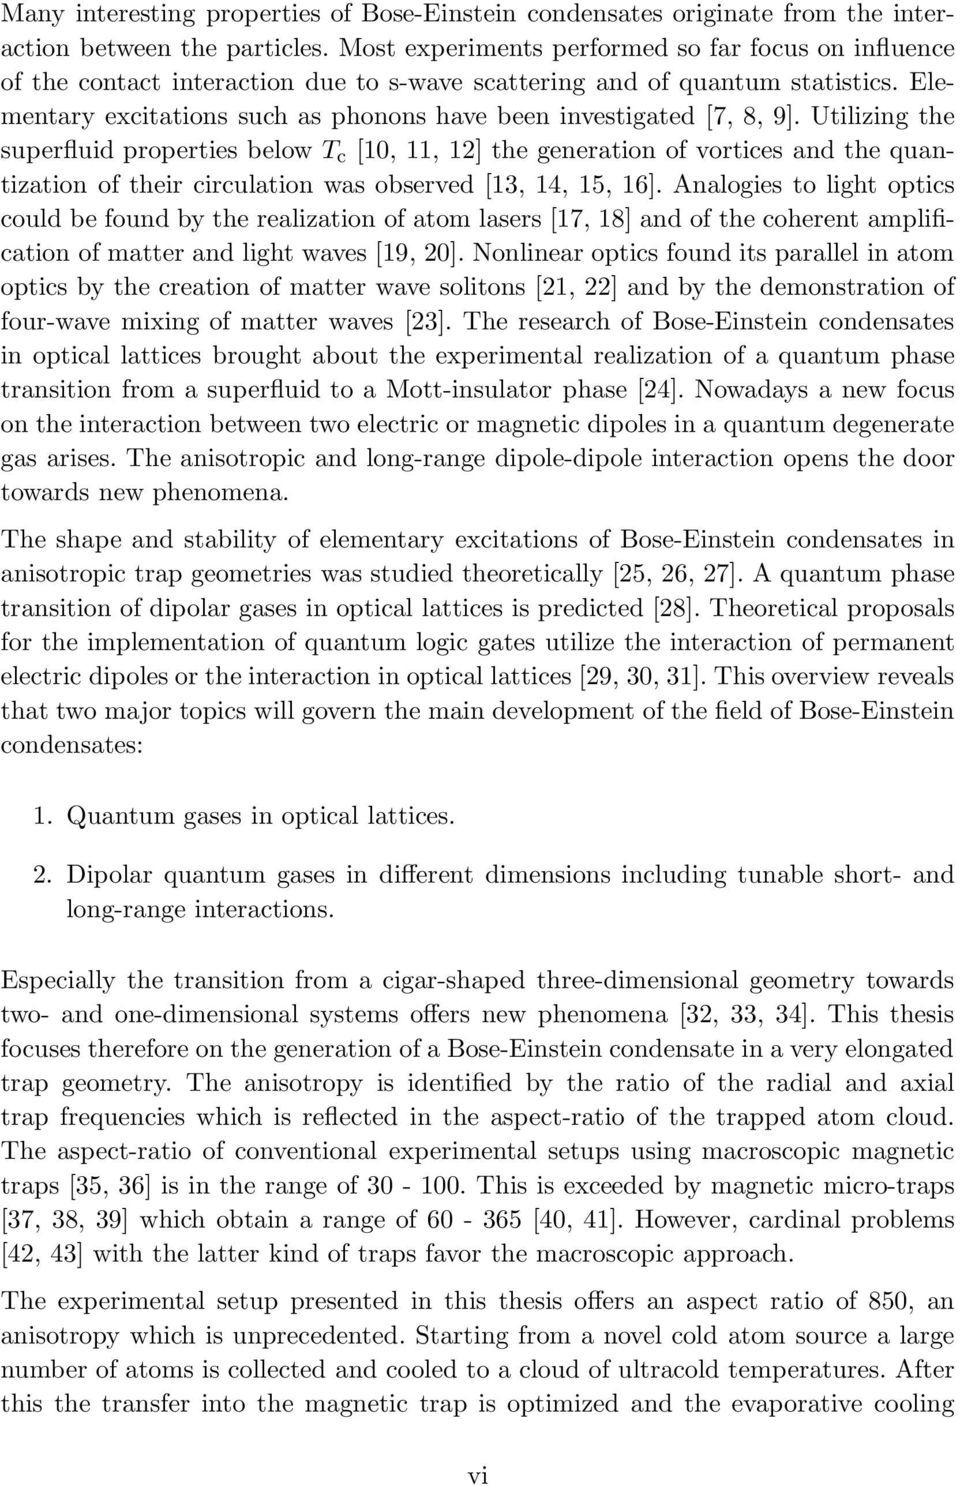 Elementary excitations such as phonons have been investigated [7, 8, 9].